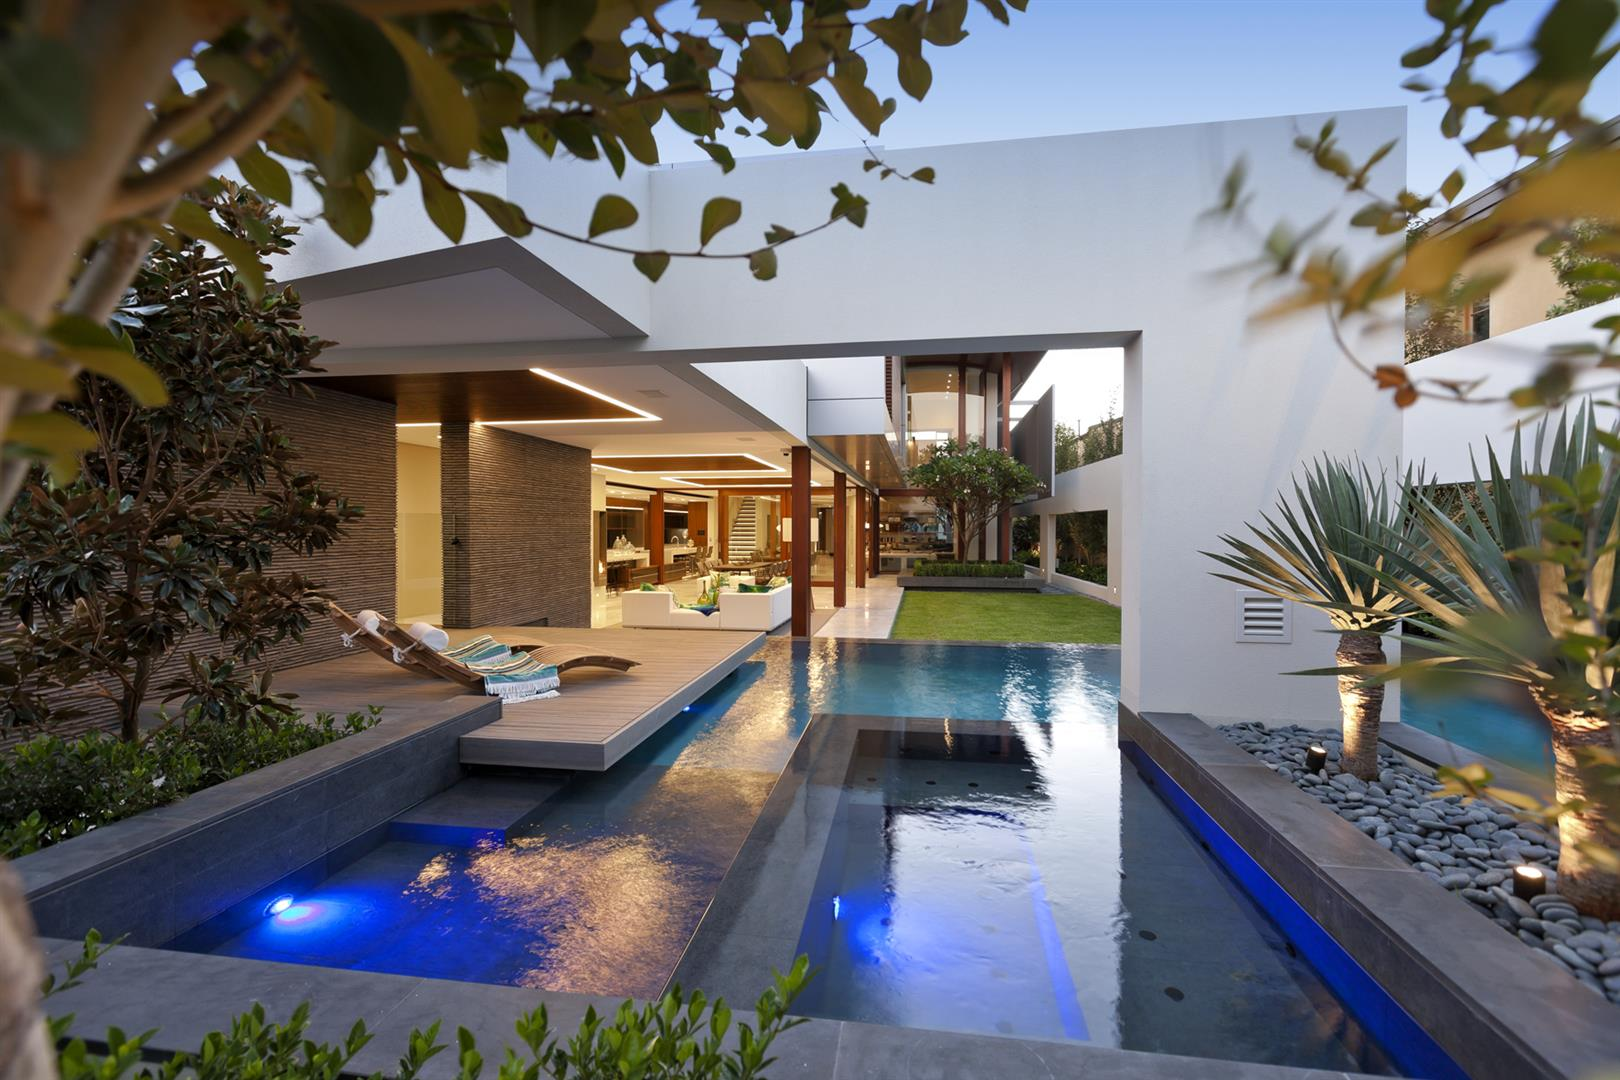 Swimming pool builders in perth dolphin pools for Swimming pool builders